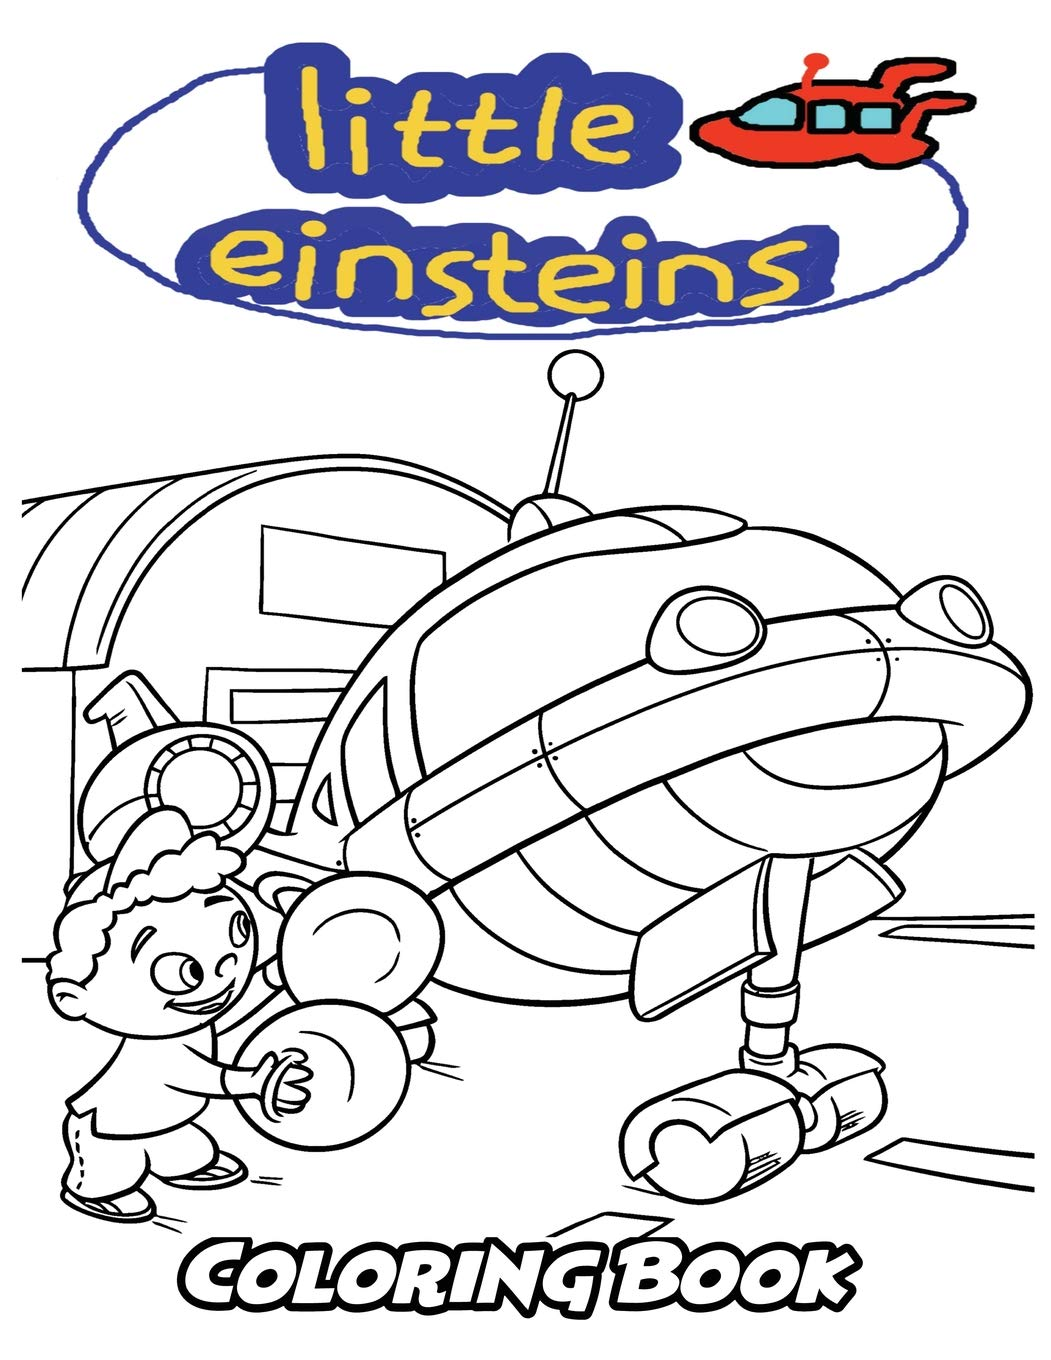 Amazon.com: Little Einsteins Coloring Book: Coloring Book ...